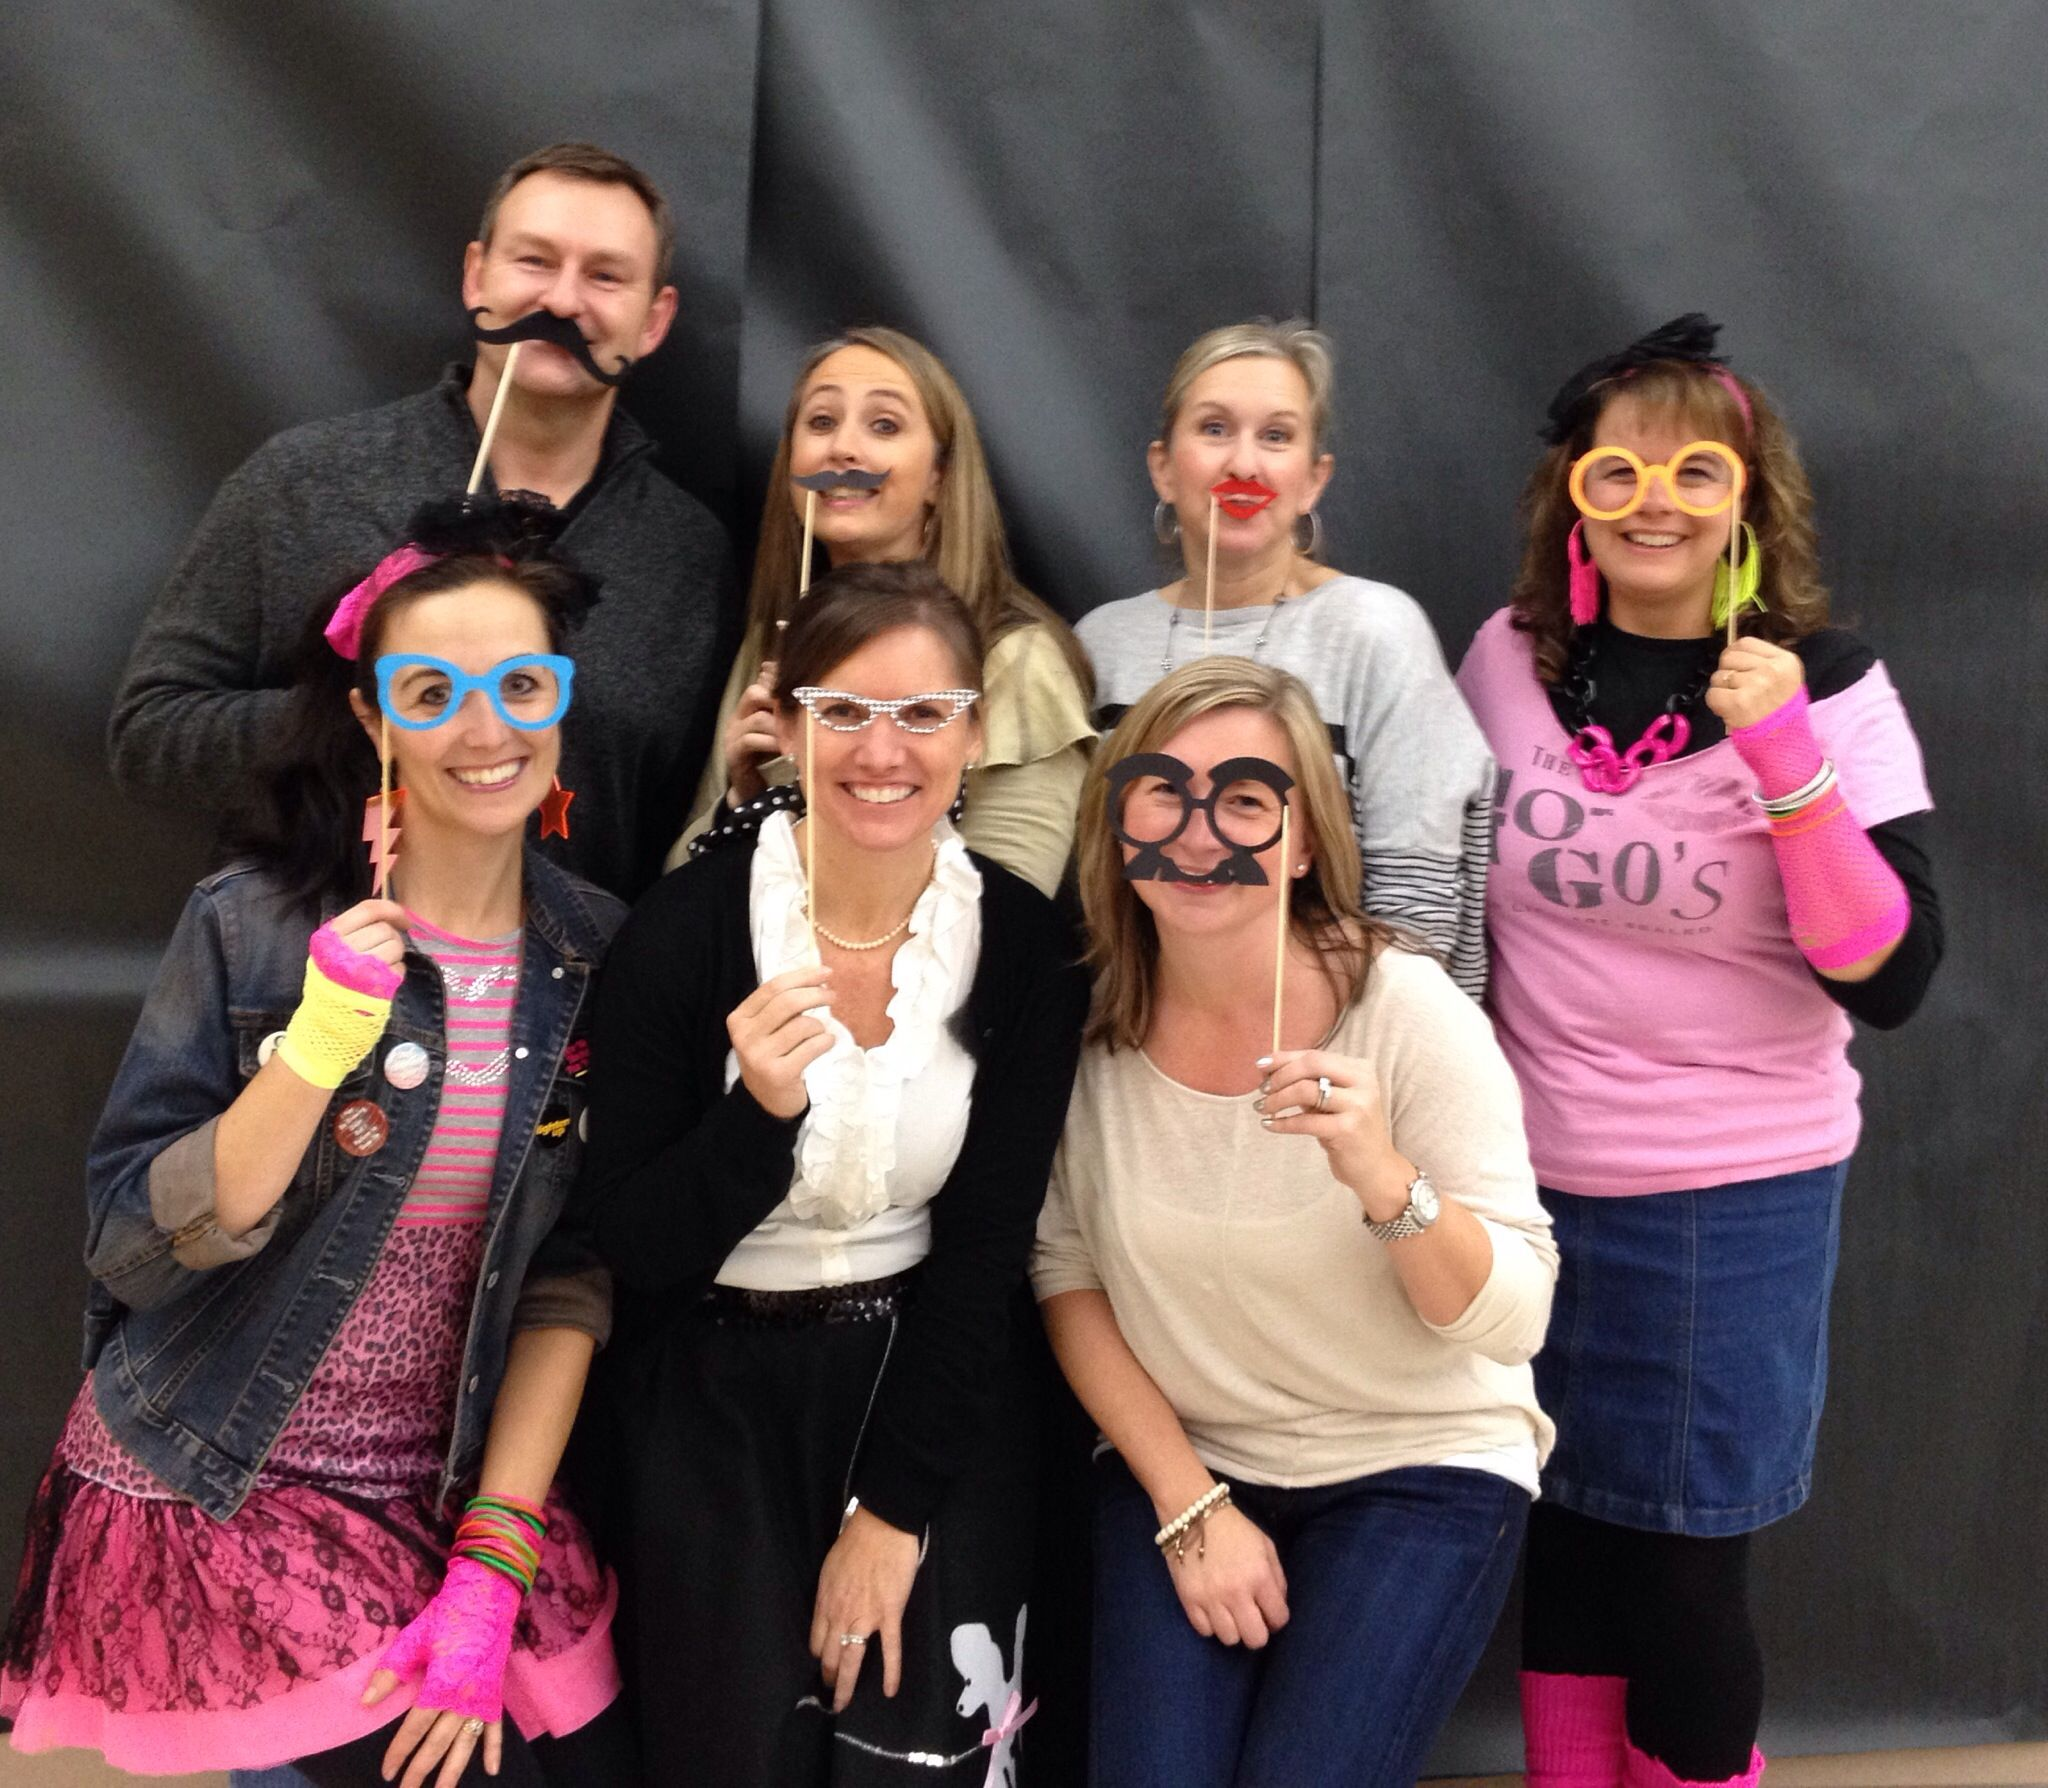 Decade Dance 2013-  Music, games, photo booth, and food!  The SHPTA board, Principal Lederman, and Mrs. Kleinkopf (Dean of Students) got their decade on!